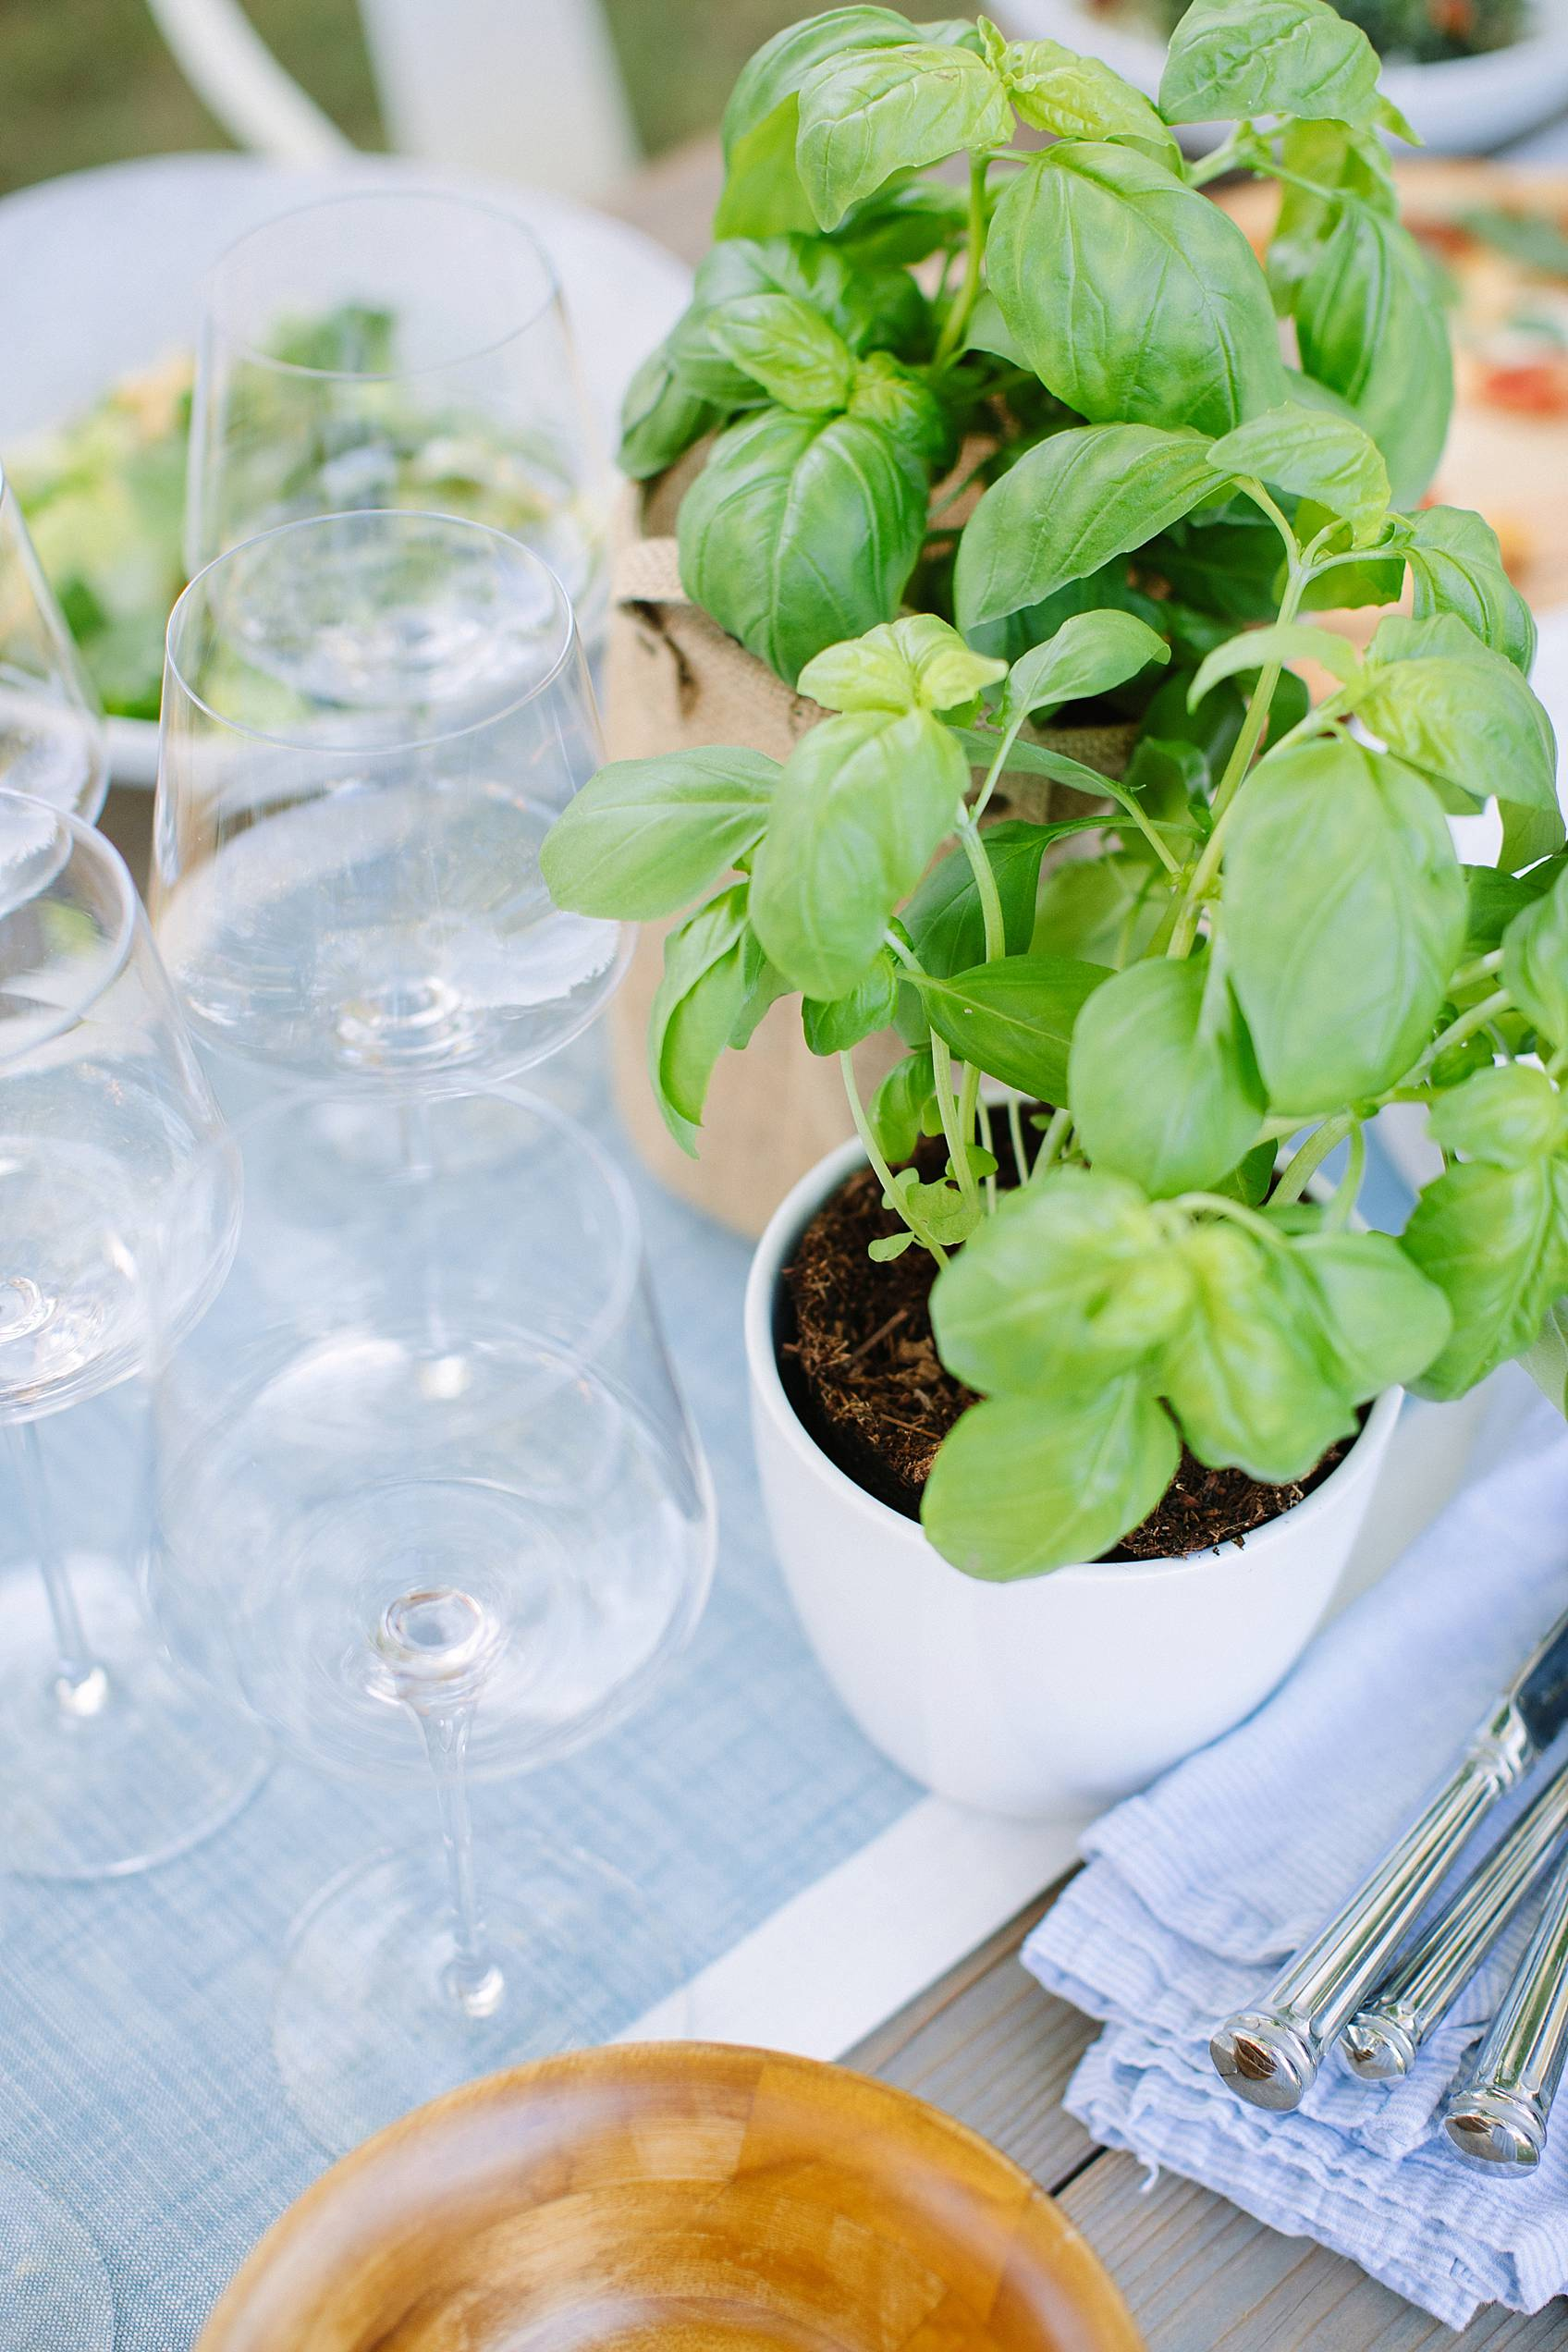 basil in pot on table with wine glasses around it